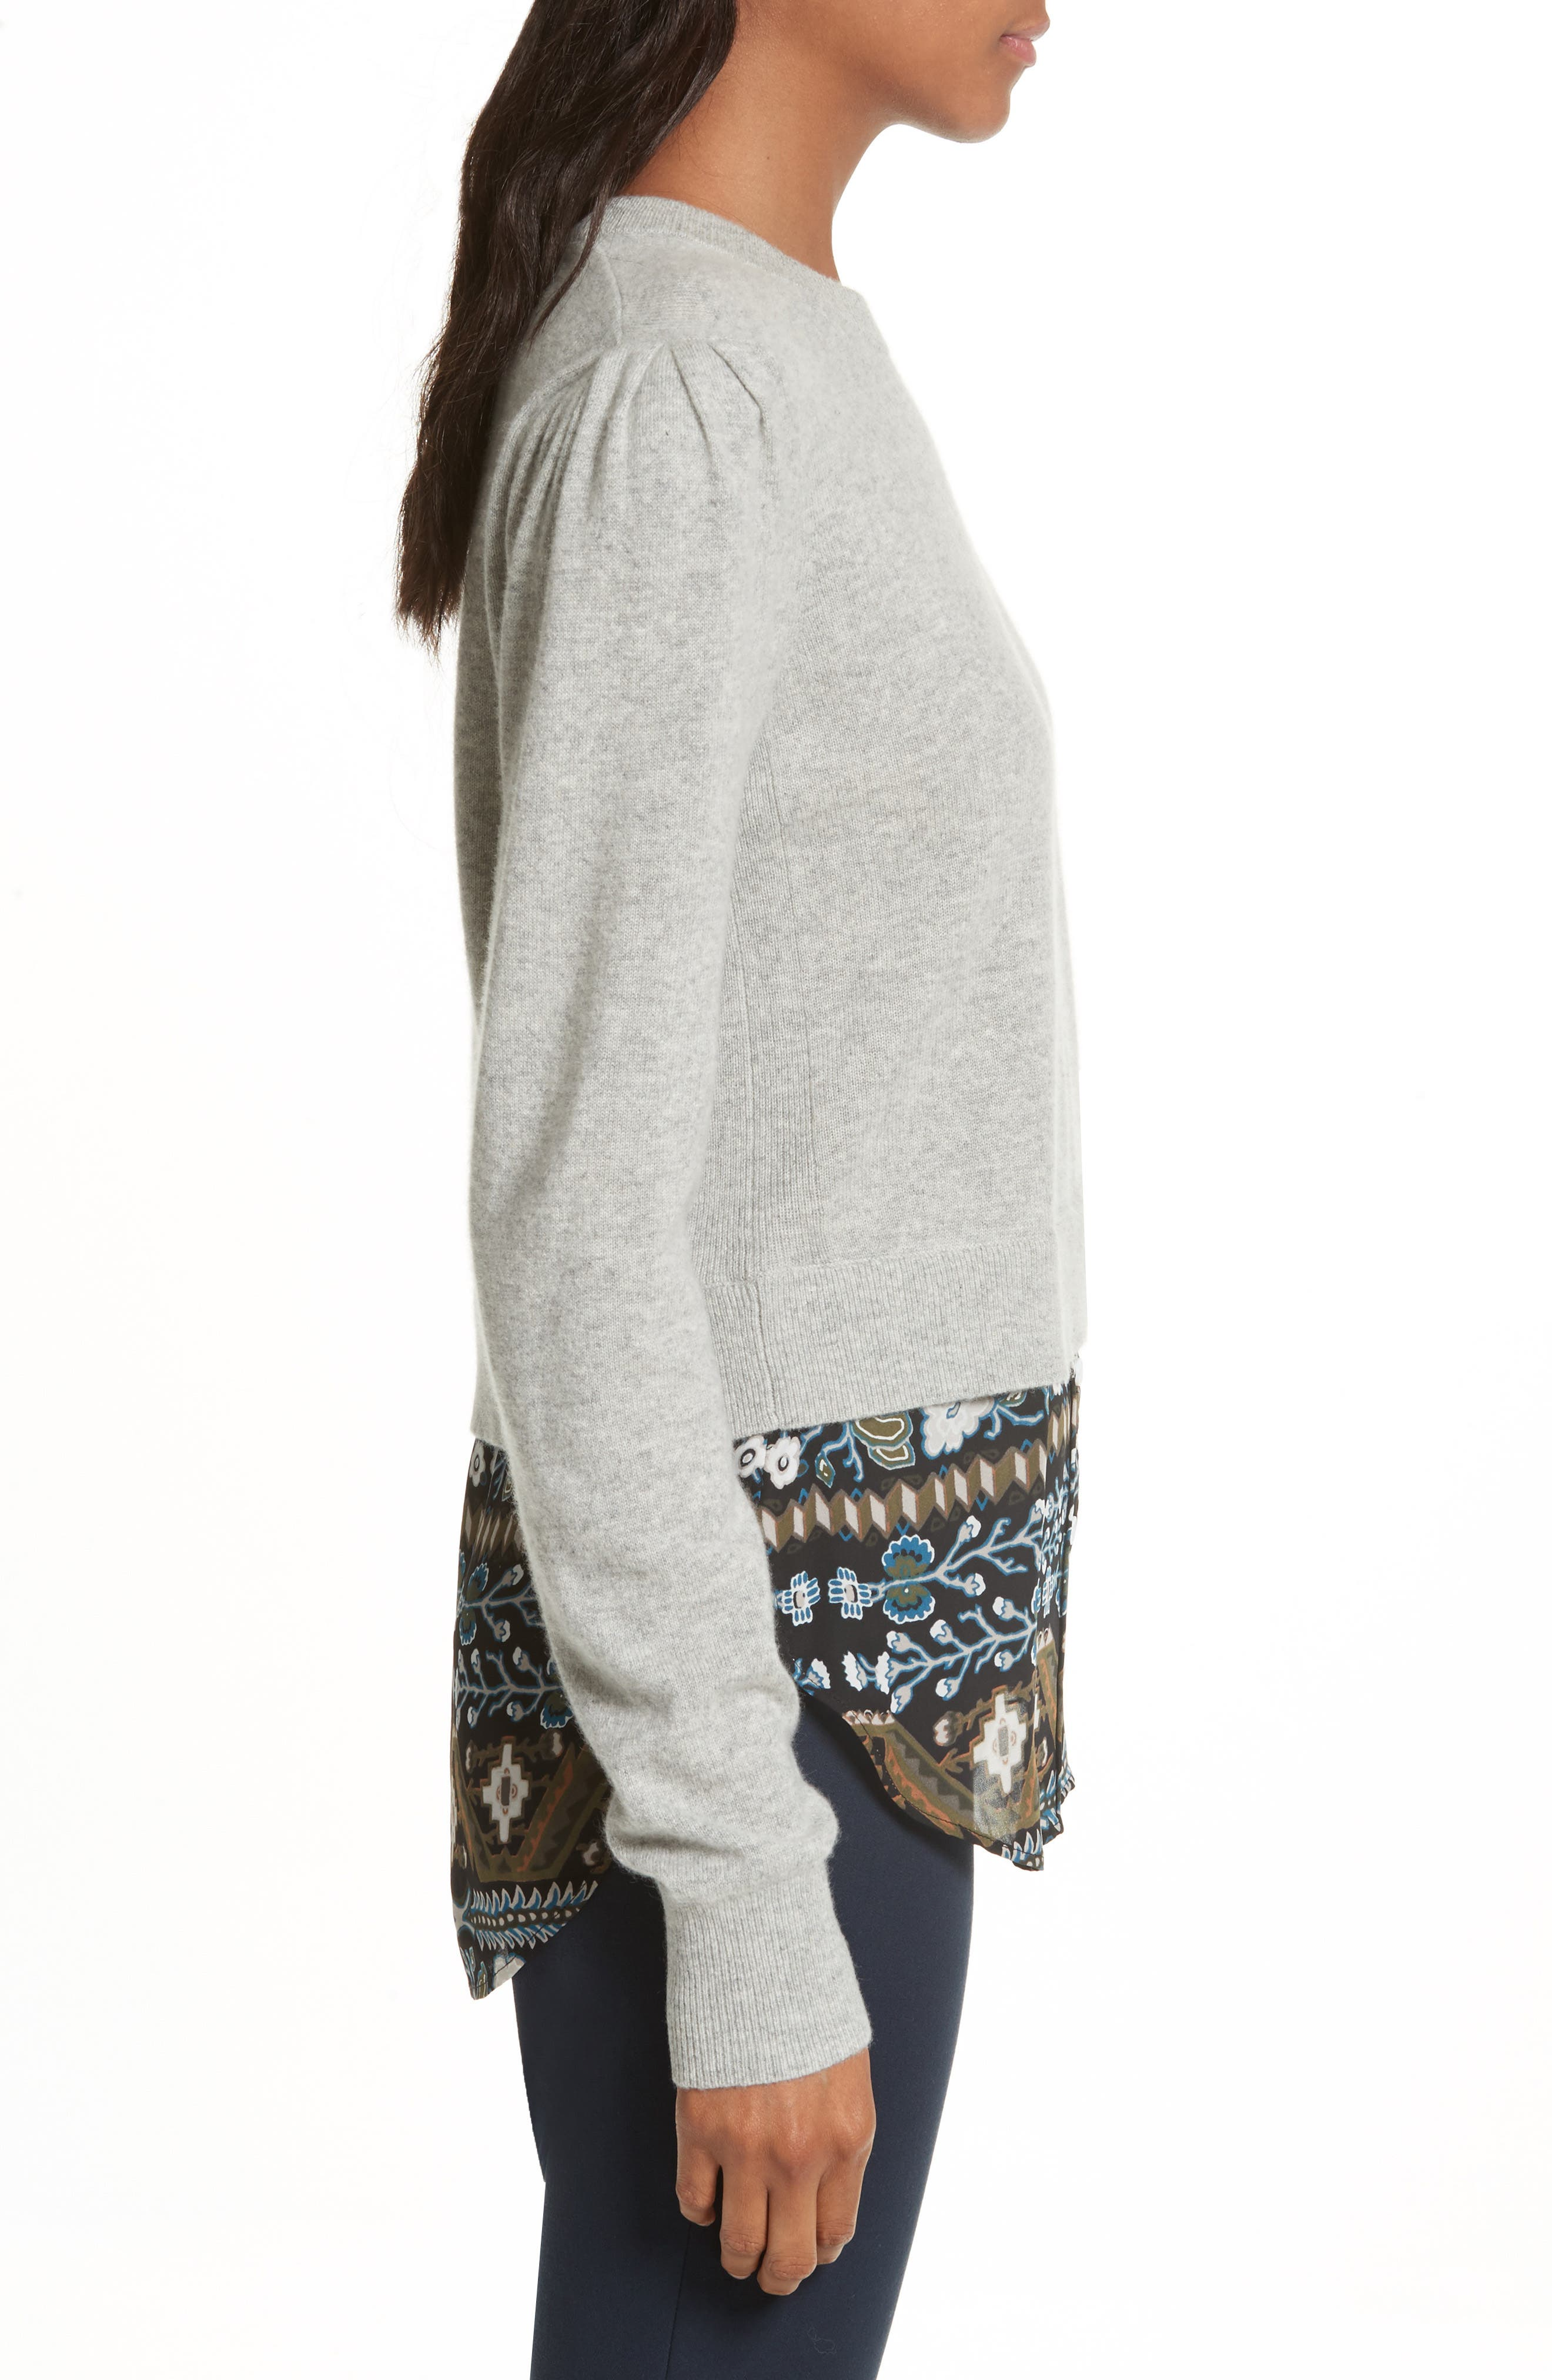 Jenson Layered Hem Cashmere Sweater,                             Alternate thumbnail 3, color,                             Grey/ Army/ Black Aztec Print